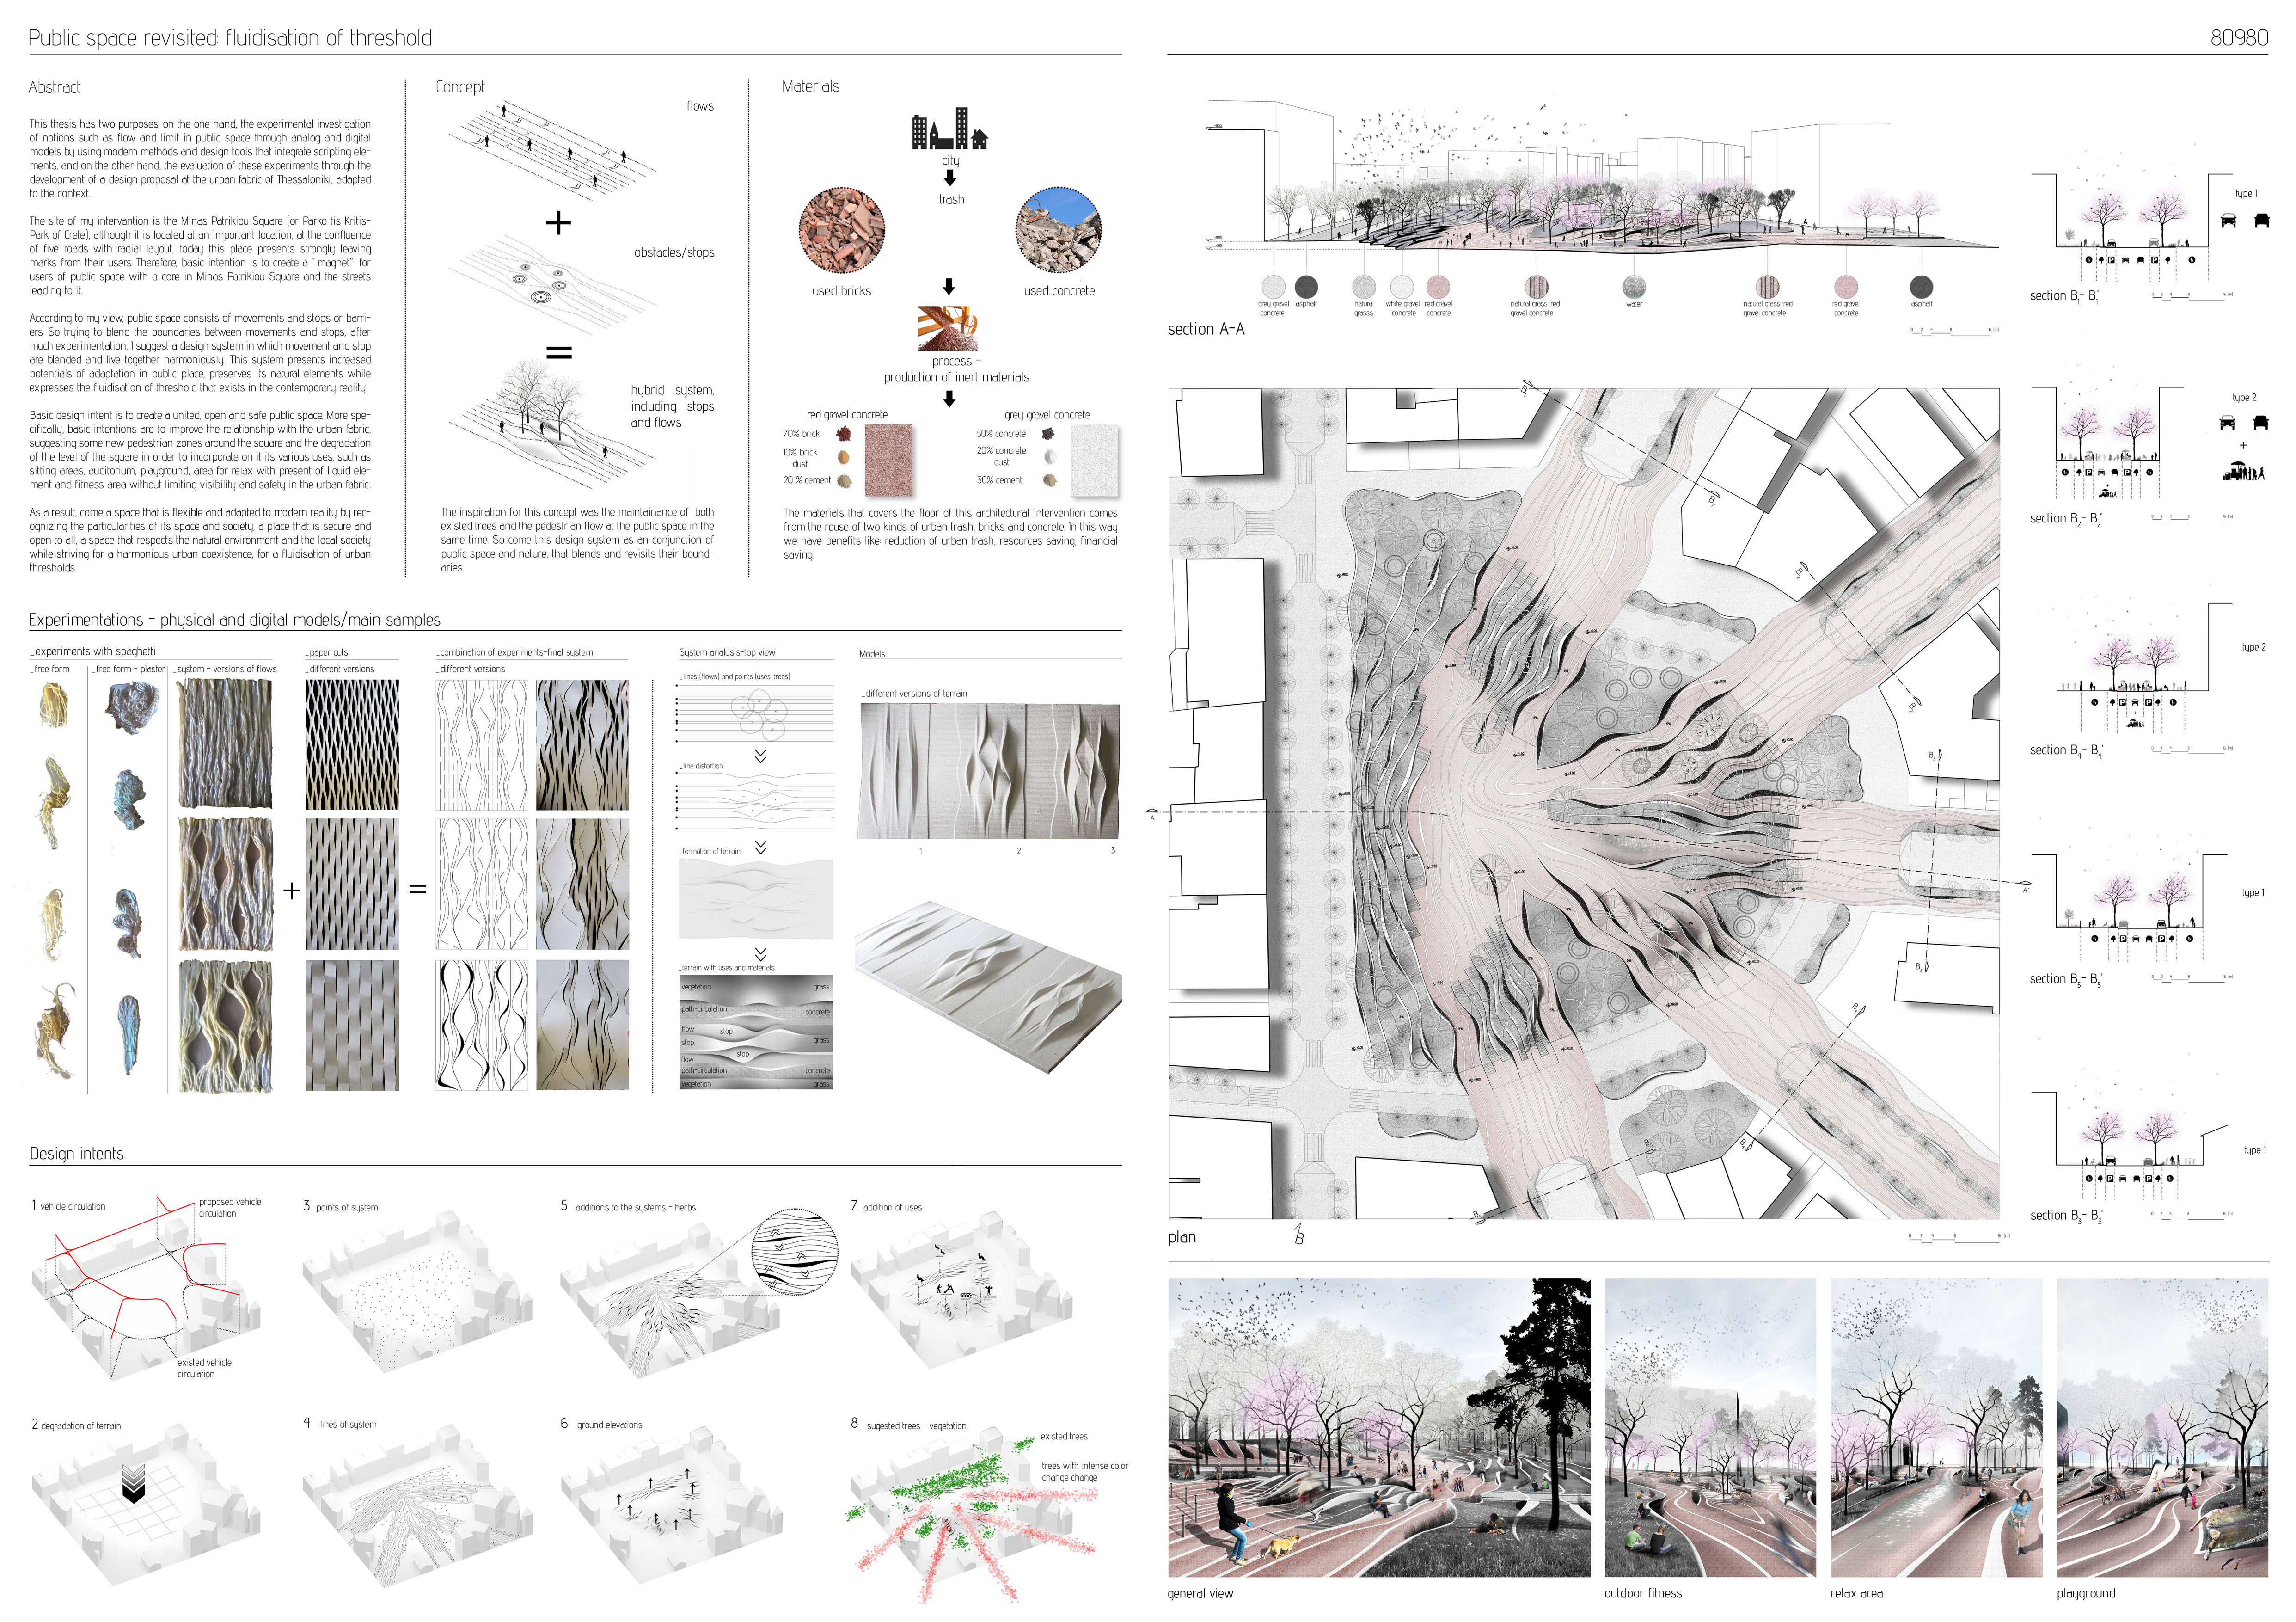 Public space revisited: fluidisation of thresholds Board